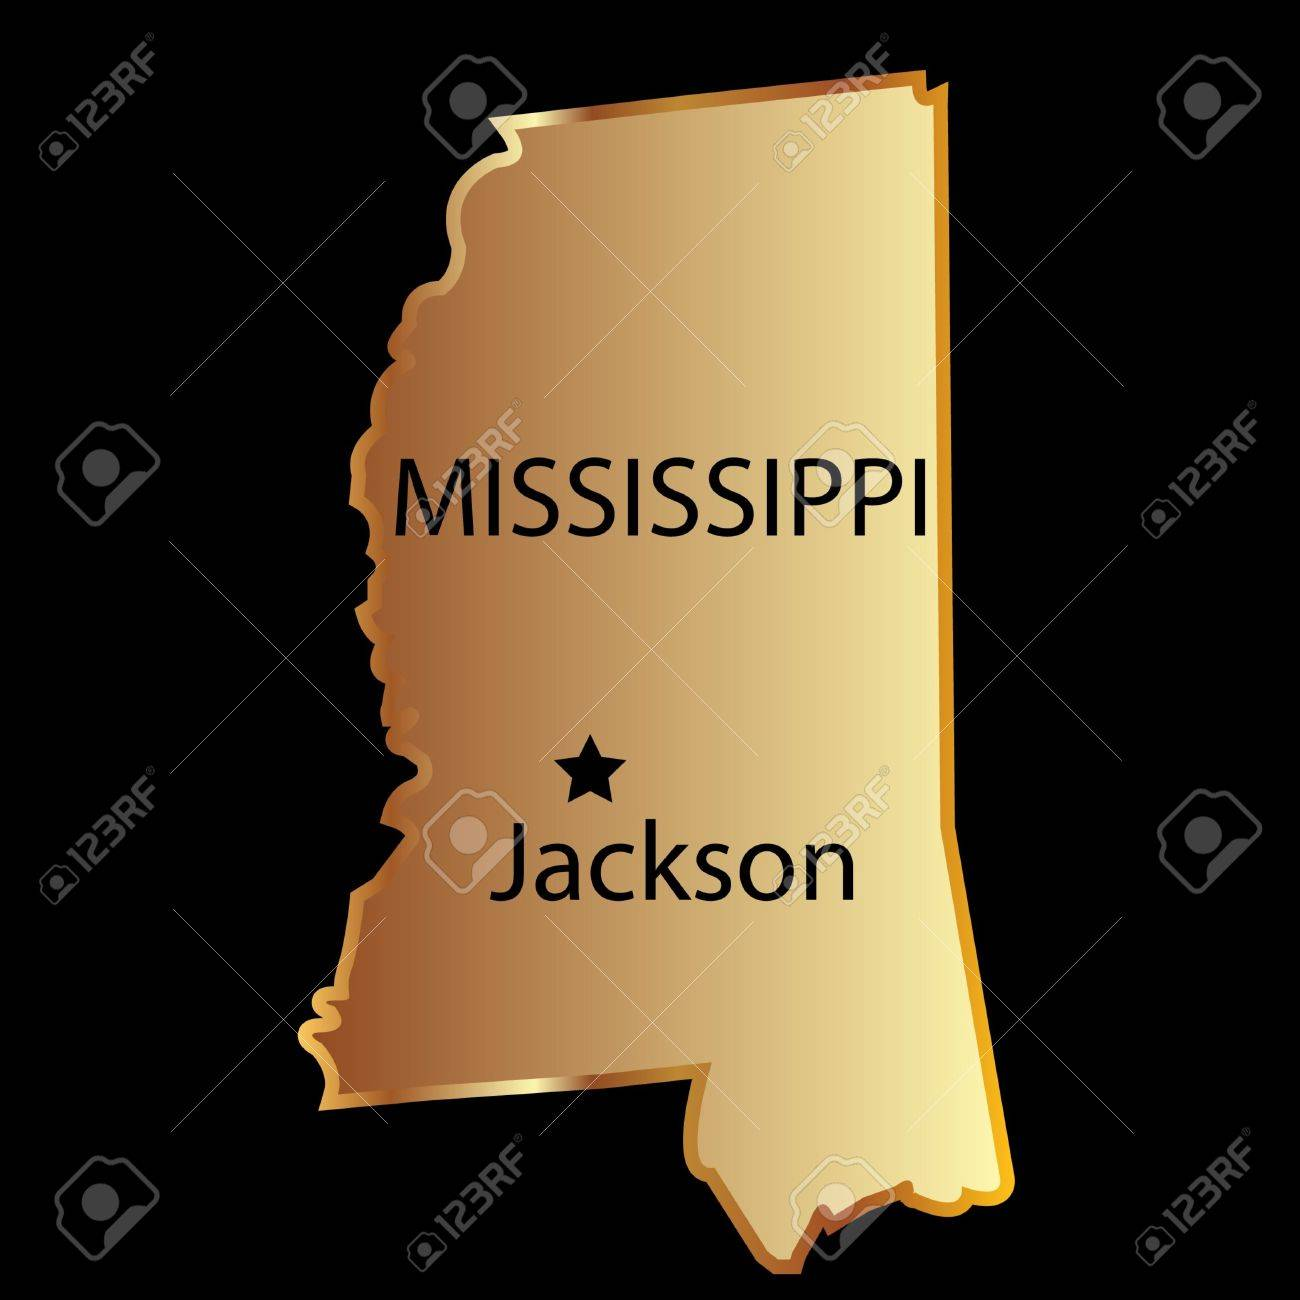 Mississippi State Usa Map Royalty Free Cliparts Vectors And - Mississippi in usa map